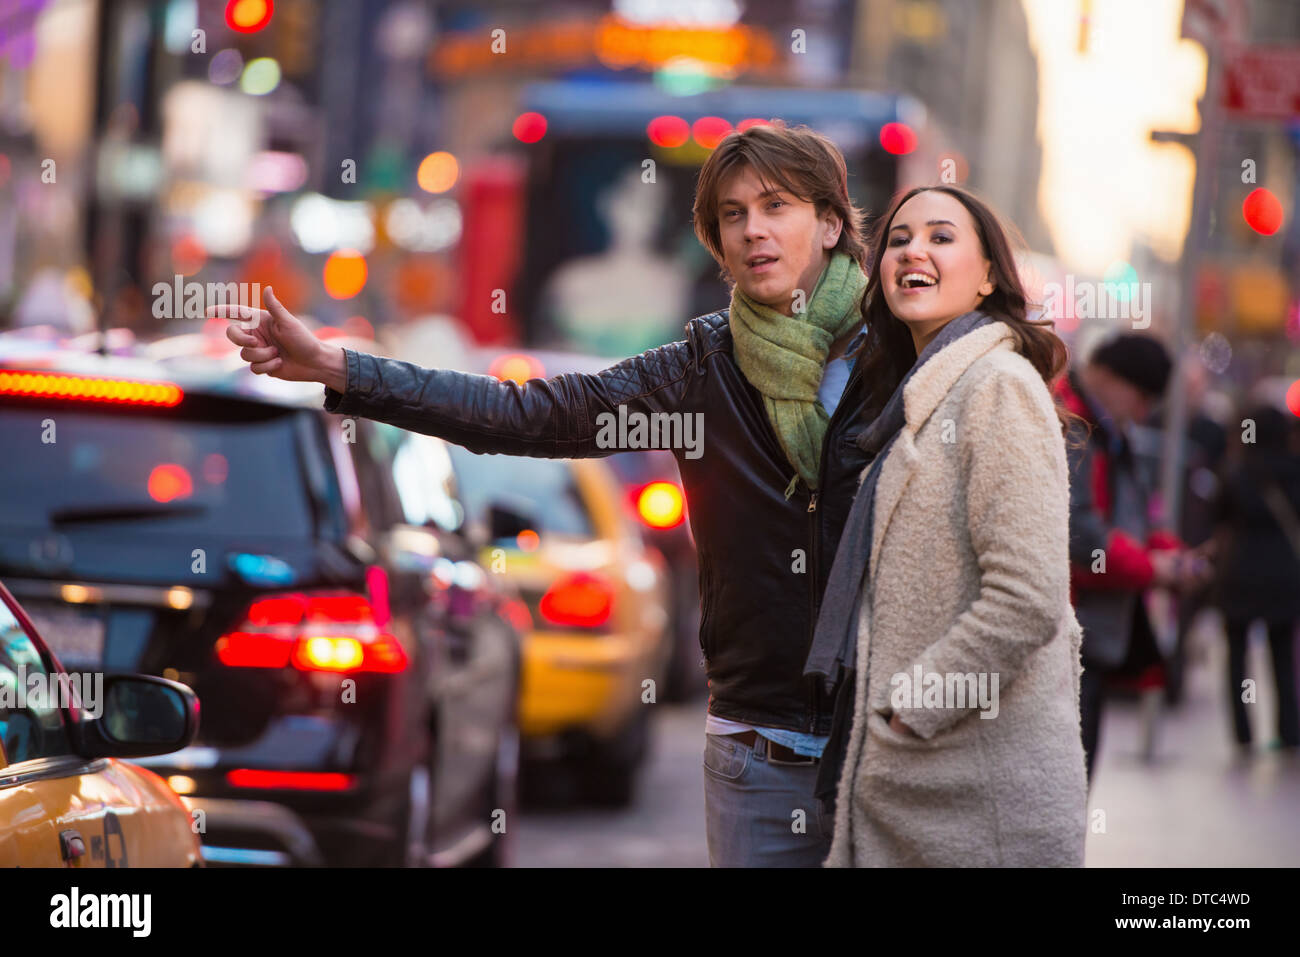 Young tourist couple hailing a cab, New York City, USA - Stock Image